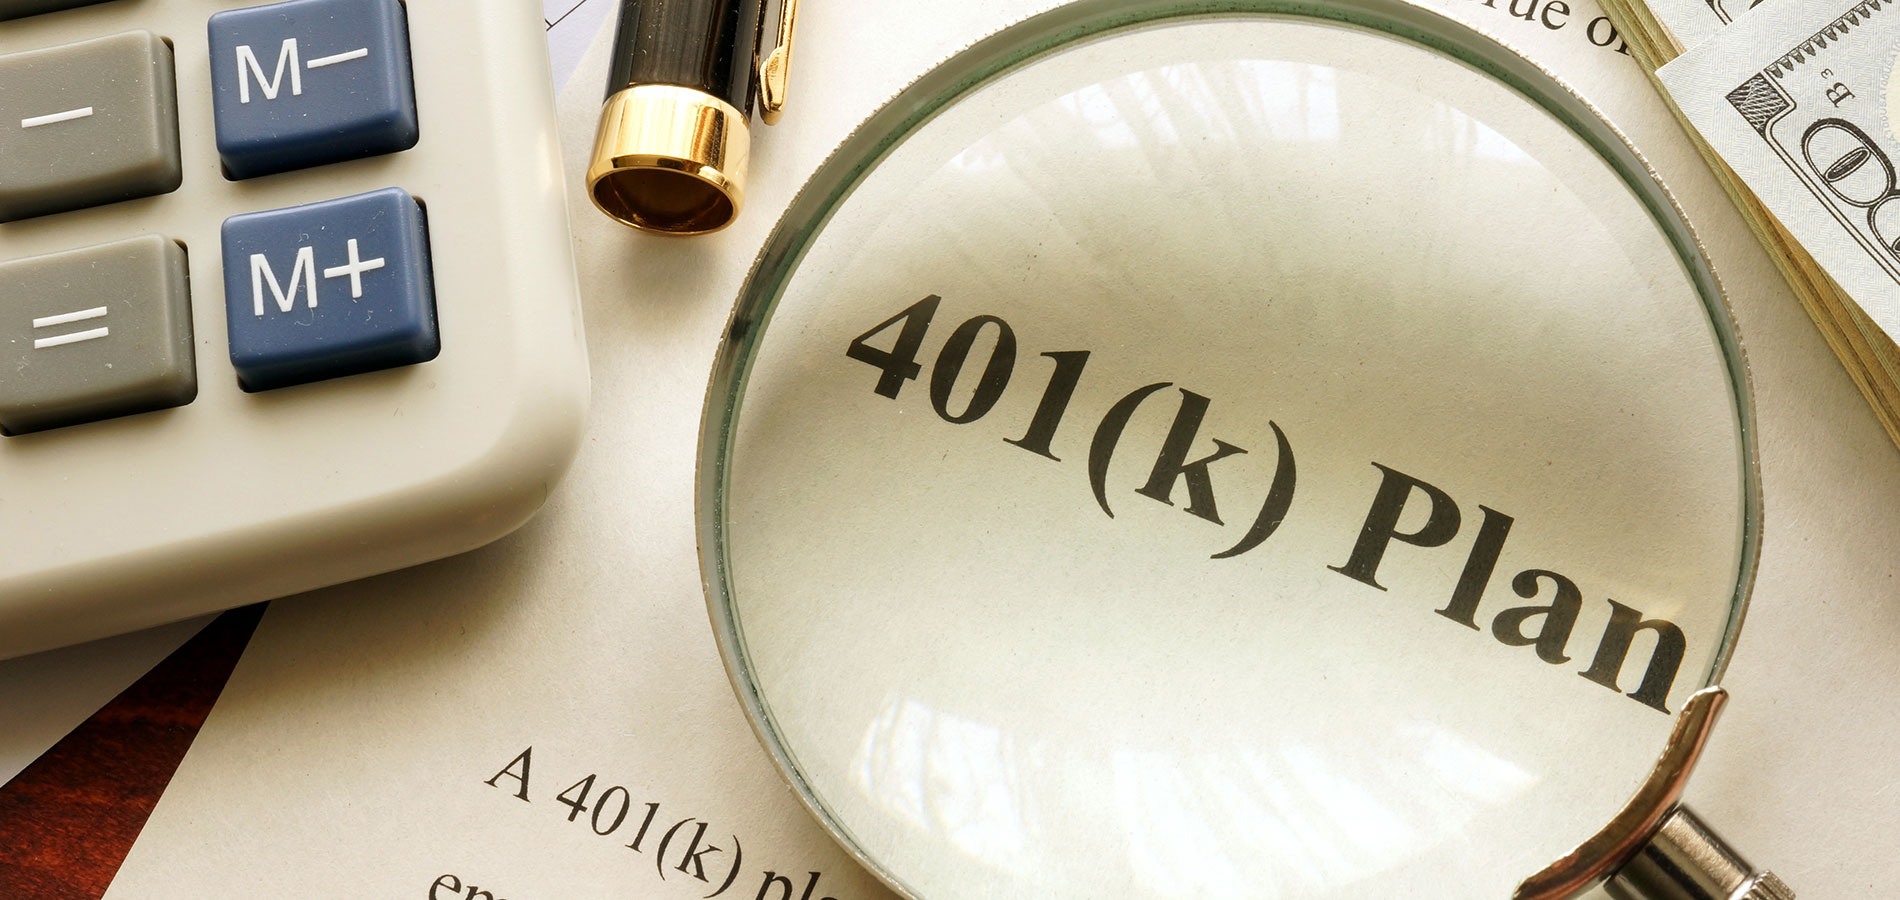 Image of a desk with 401(k) Plan